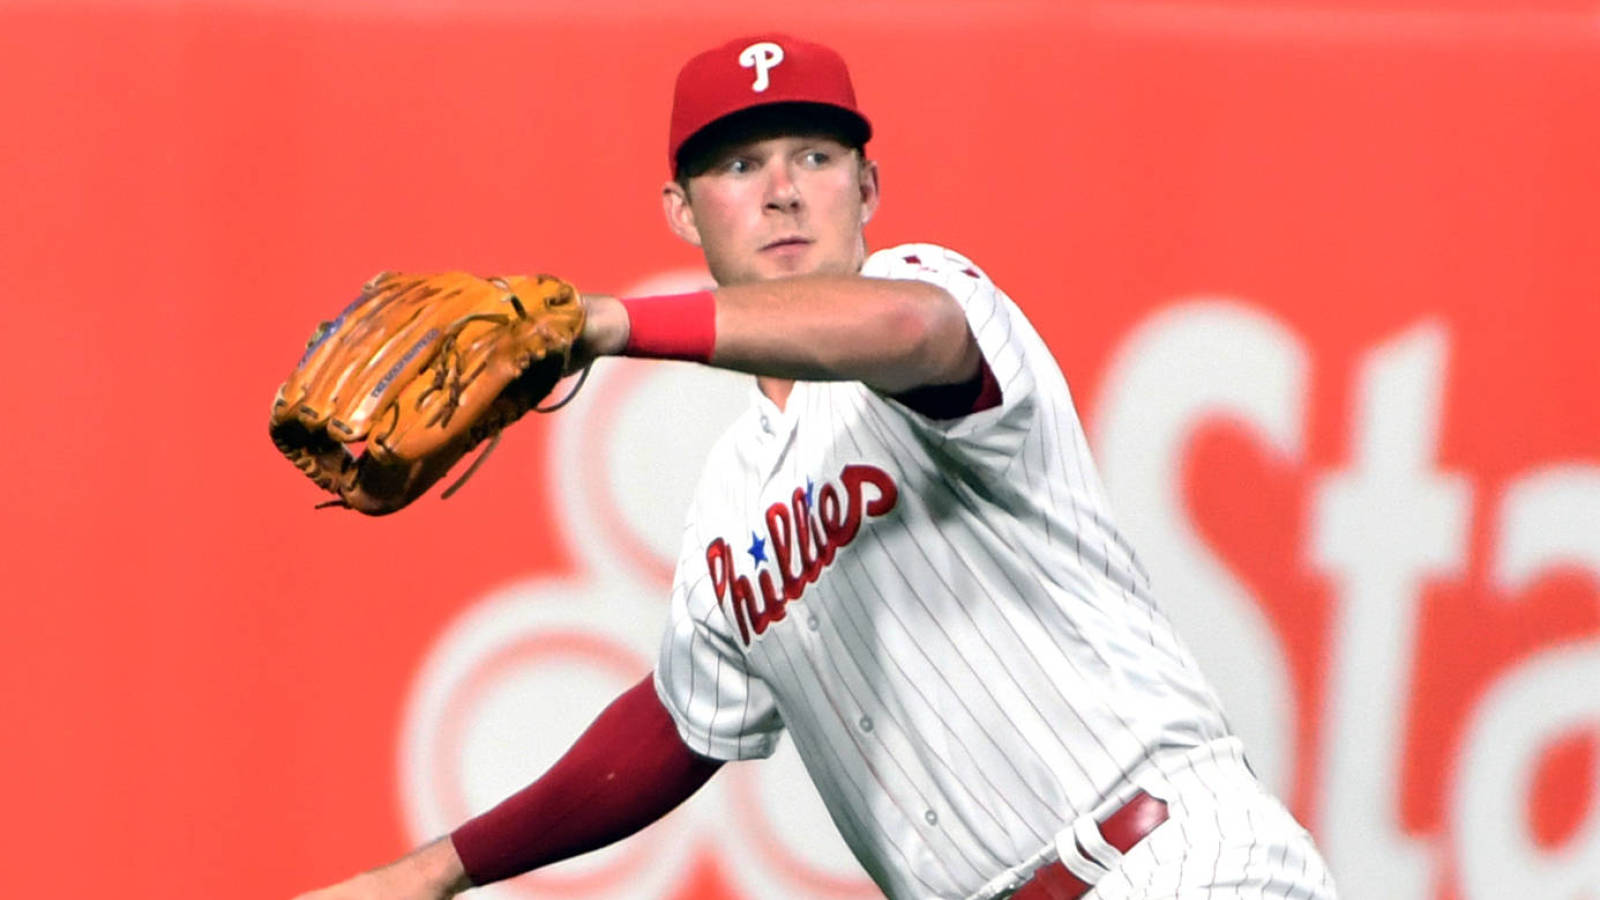 Rhys Hoskins would prefer a return to first base